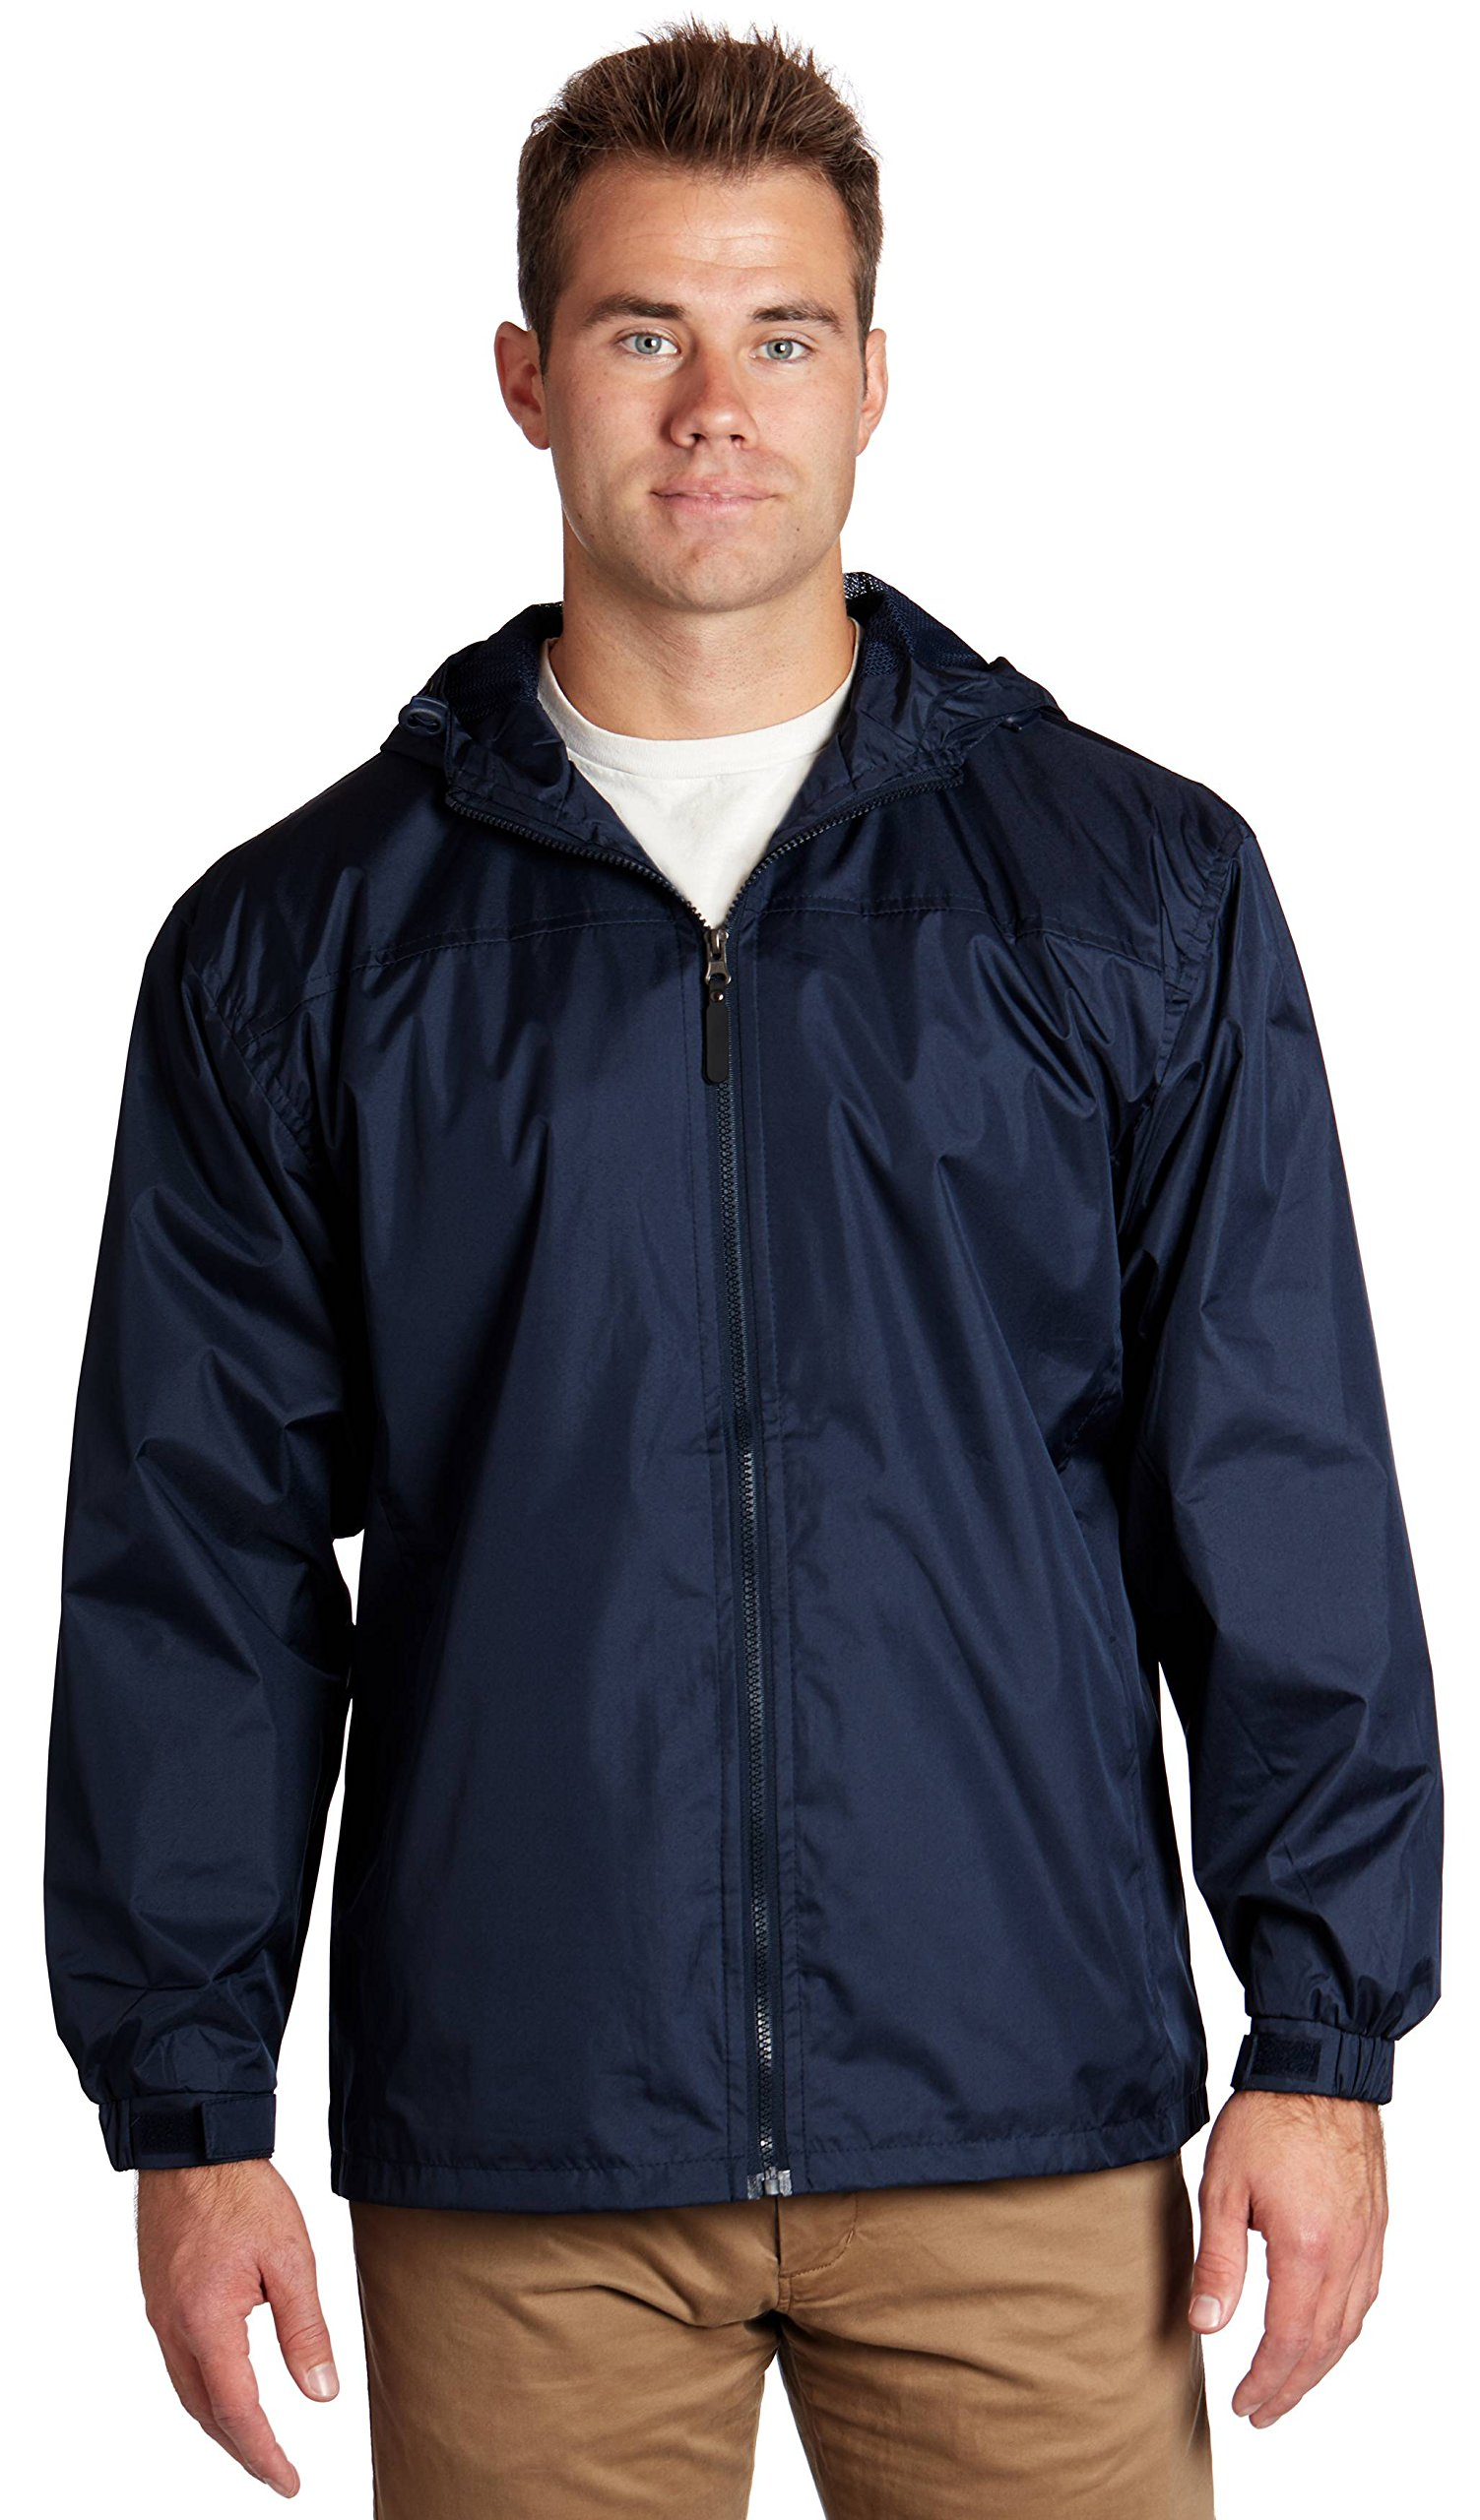 Equipment De Sport, USA Wholesale Unisex Polyester Hooded Lined Windbreaker Jackets - Navy, X-Large by Equipment De Sport USA